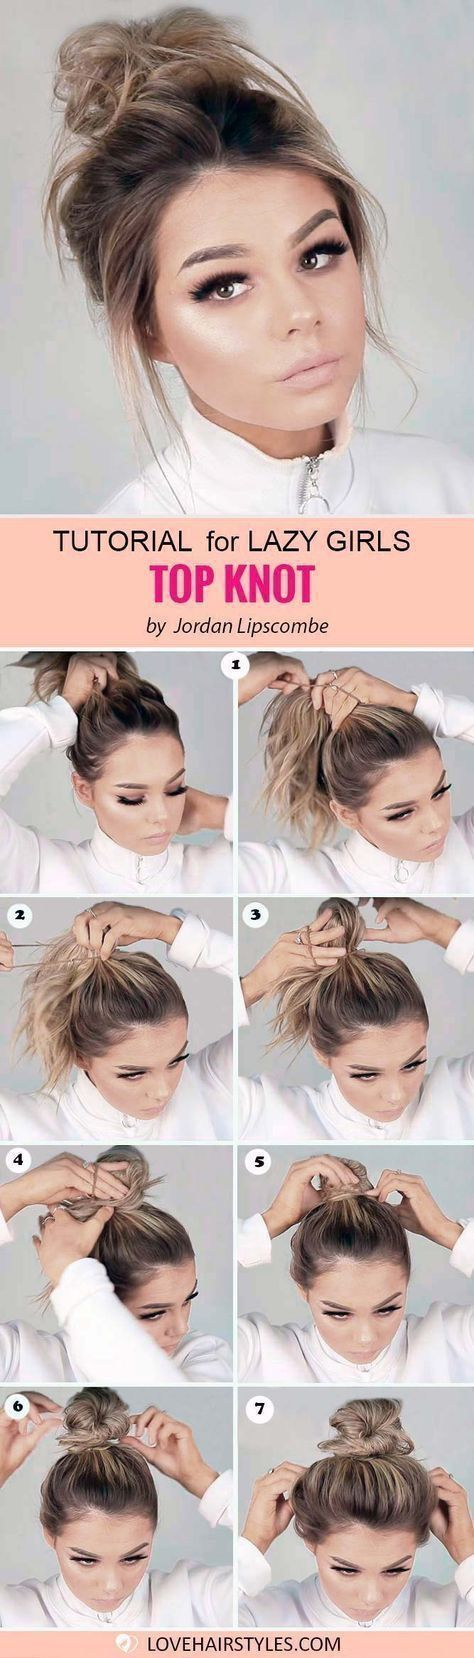 6 Cheap And Easy Tips: Updos Hairstyle For Girls everyday hairstyles updo.Black Women Hairstyles Signs updos hairstyle for girls.Brunette Hairstyles B